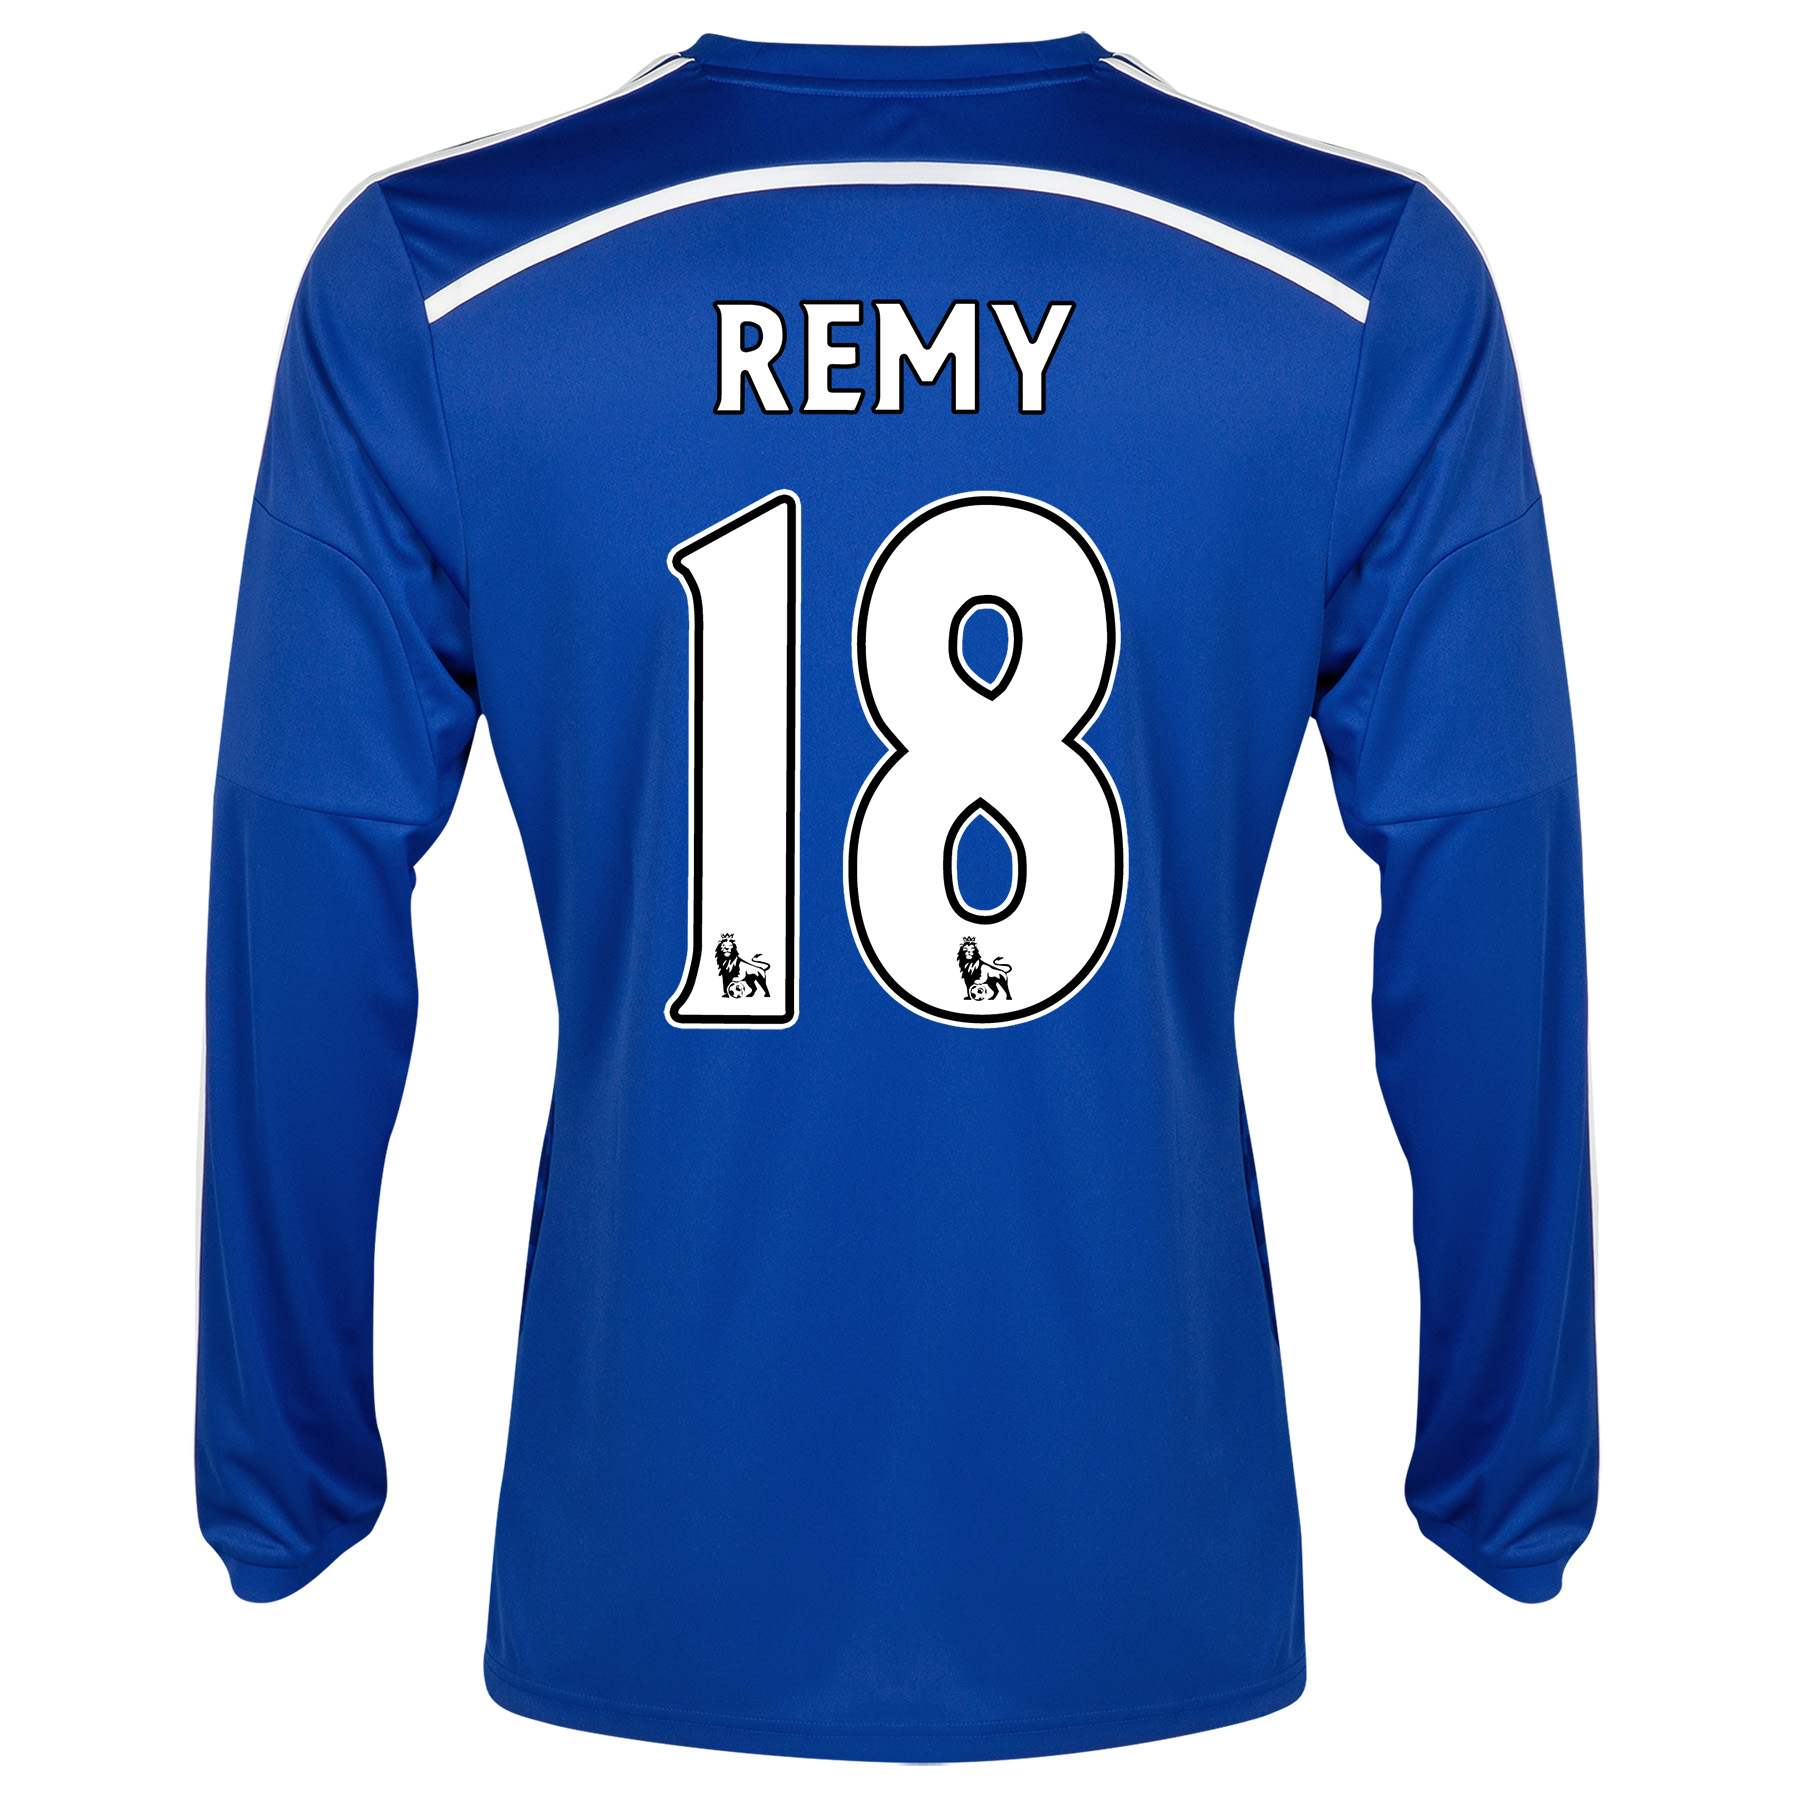 Chelsea Home Shirt 2014/15 - Long Sleeve - Kids with Remy 18 printing